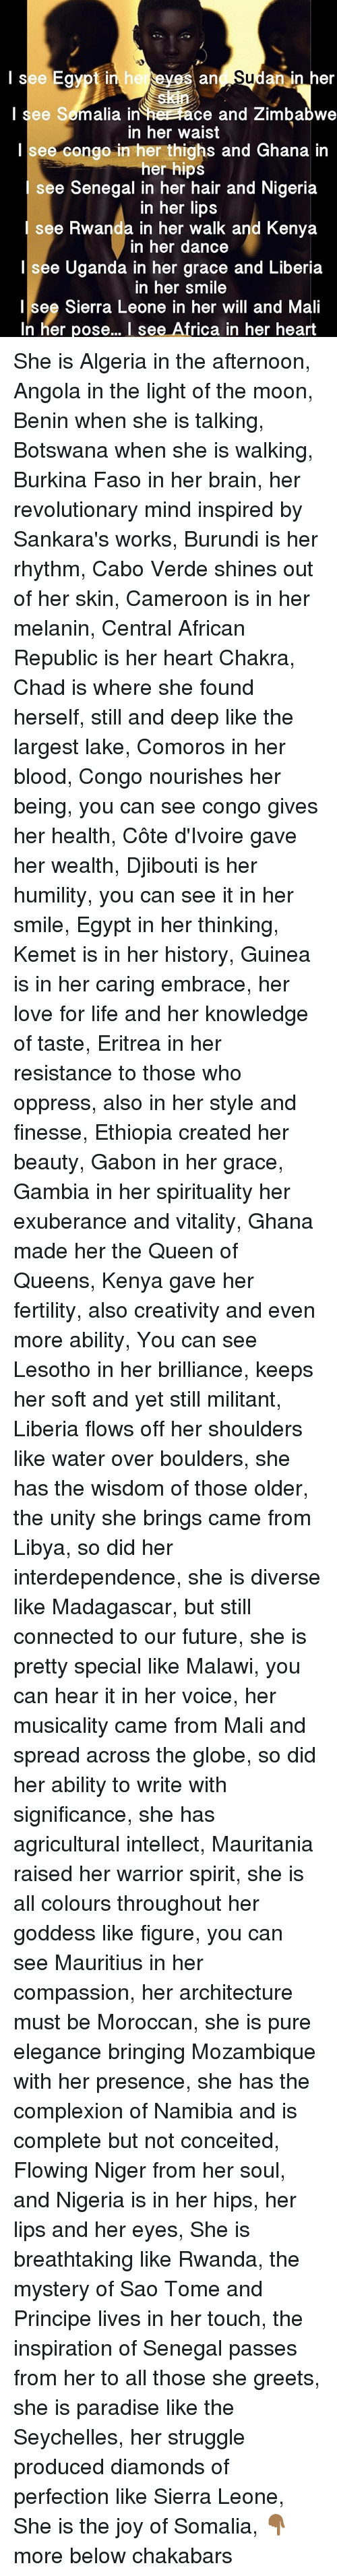 Egyption: in  ne  an in her  I see Semalia in heerace and Zimbabwe  in her waist  I see congo in her thighs and Ghana in  her hips  e Senegal in her hair and Nigeria  in her lips  see Rwanda in her walk and Kenya  n her dance  Isee Uganda in her grace and Liberia  in her smile  l see Sierra Leone in her will and Mali  In her pose... I see Africa in her heart She is Algeria in the afternoon, Angola in the light of the moon, Benin when she is talking, Botswana when she is walking, Burkina Faso in her brain, her revolutionary mind inspired by Sankara's works, Burundi is her rhythm, Cabo Verde shines out of her skin, Cameroon is in her melanin, Central African Republic is her heart Chakra, Chad is where she found herself, still and deep like the largest lake, Comoros in her blood, Congo nourishes her being, you can see congo gives her health, Côte d'Ivoire gave her wealth, Djibouti is her humility, you can see it in her smile, Egypt in her thinking, Kemet is in her history, Guinea is in her caring embrace, her love for life and her knowledge of taste, Eritrea in her resistance to those who oppress, also in her style and finesse, Ethiopia created her beauty, Gabon in her grace, Gambia in her spirituality her exuberance and vitality, Ghana made her the Queen of Queens, Kenya gave her fertility, also creativity and even more ability, You can see Lesotho in her brilliance, keeps her soft and yet still militant, Liberia flows off her shoulders like water over boulders, she has the wisdom of those older, the unity she brings came from Libya, so did her interdependence, she is diverse like Madagascar, but still connected to our future, she is pretty special like Malawi, you can hear it in her voice, her musicality came from Mali and spread across the globe, so did her ability to write with significance, she has agricultural intellect, Mauritania raised her warrior spirit, she is all colours throughout her goddess like figure, you can see Mauritius in her compassion, her architecture must be Moroccan, she is pure elegance bringing Mozambique with her presence, she has the complexion of Namibia and is complete but not conceited, Flowing Niger from her soul, and Nigeria is in her hips, her lips and her eyes, She is breathtaking like Rwanda, the mystery of Sao Tome and Principe lives in her touch, the inspiration of Senegal passes from her to all those she greets, she is paradise like the Seychelles, her struggle produced diamonds of perfection like Sierra Leone, She is the joy of Somalia, 👇🏾 more below chakabars